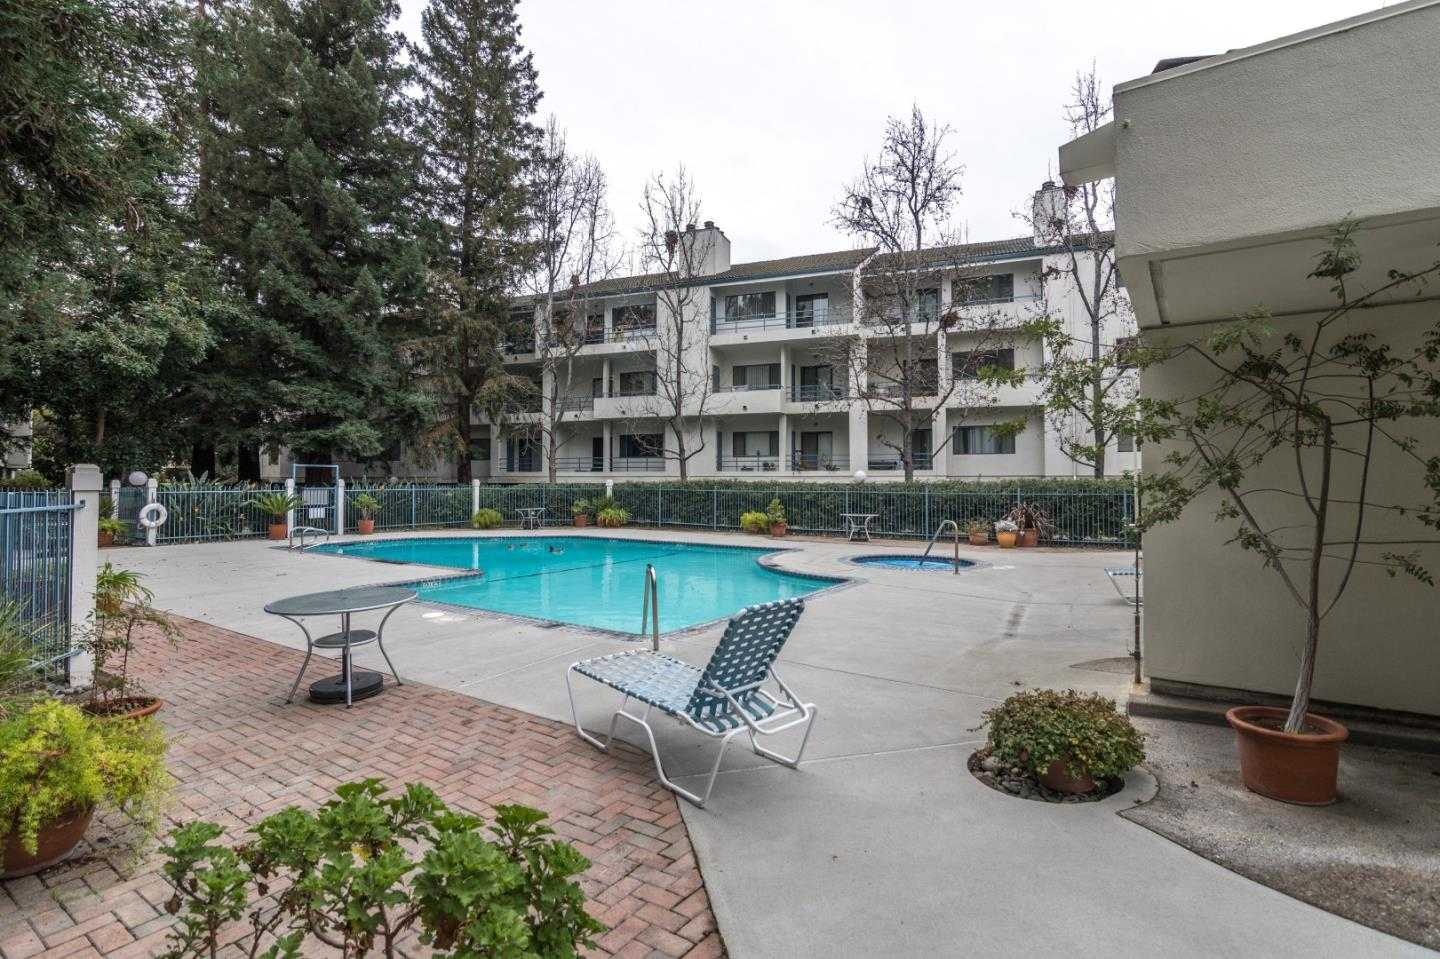 $479,000 - 1Br/1Ba -  for Sale in San Jose